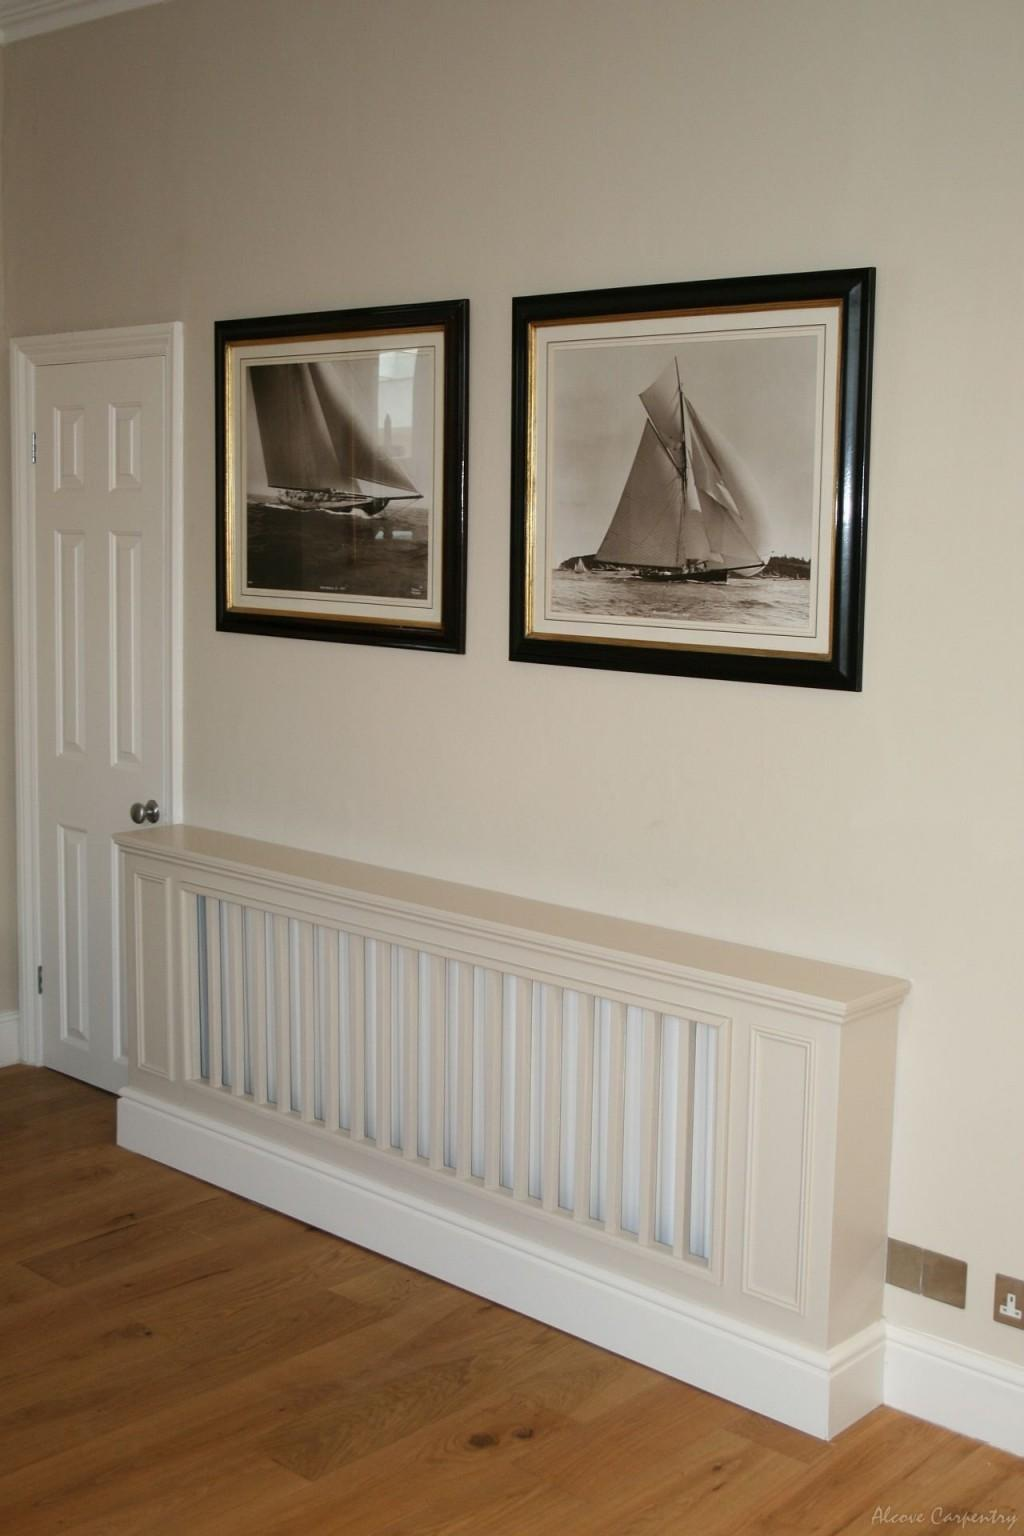 Stylish White Radiator Covers Long Island New York Design